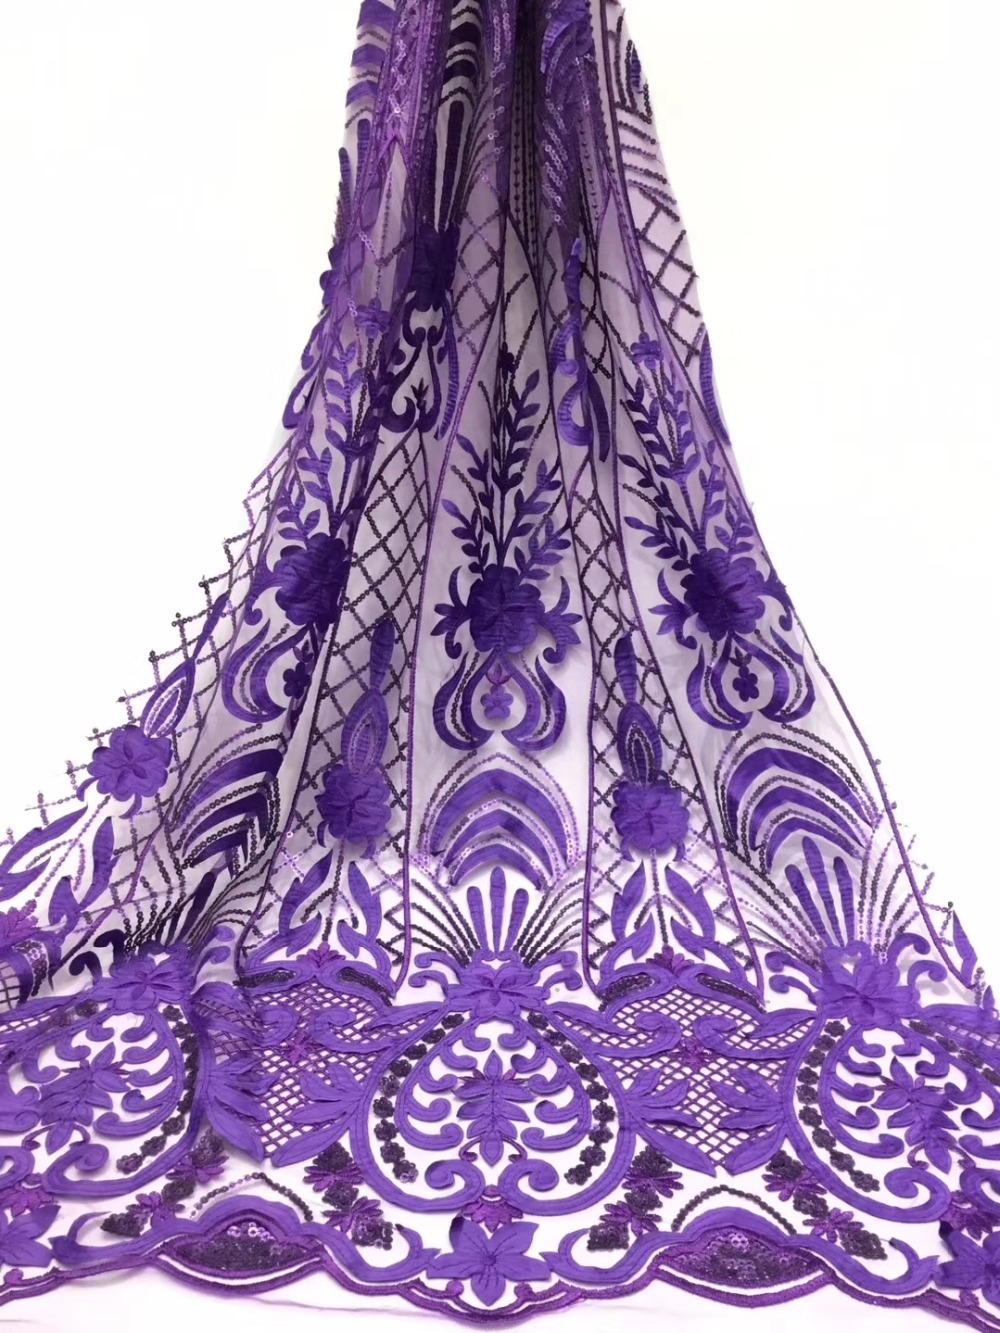 African Lace Fabric Nigerian French Fabric 2019 High Quality African French Tulle Lace Fabric with stones DPMA134African Lace Fabric Nigerian French Fabric 2019 High Quality African French Tulle Lace Fabric with stones DPMA134